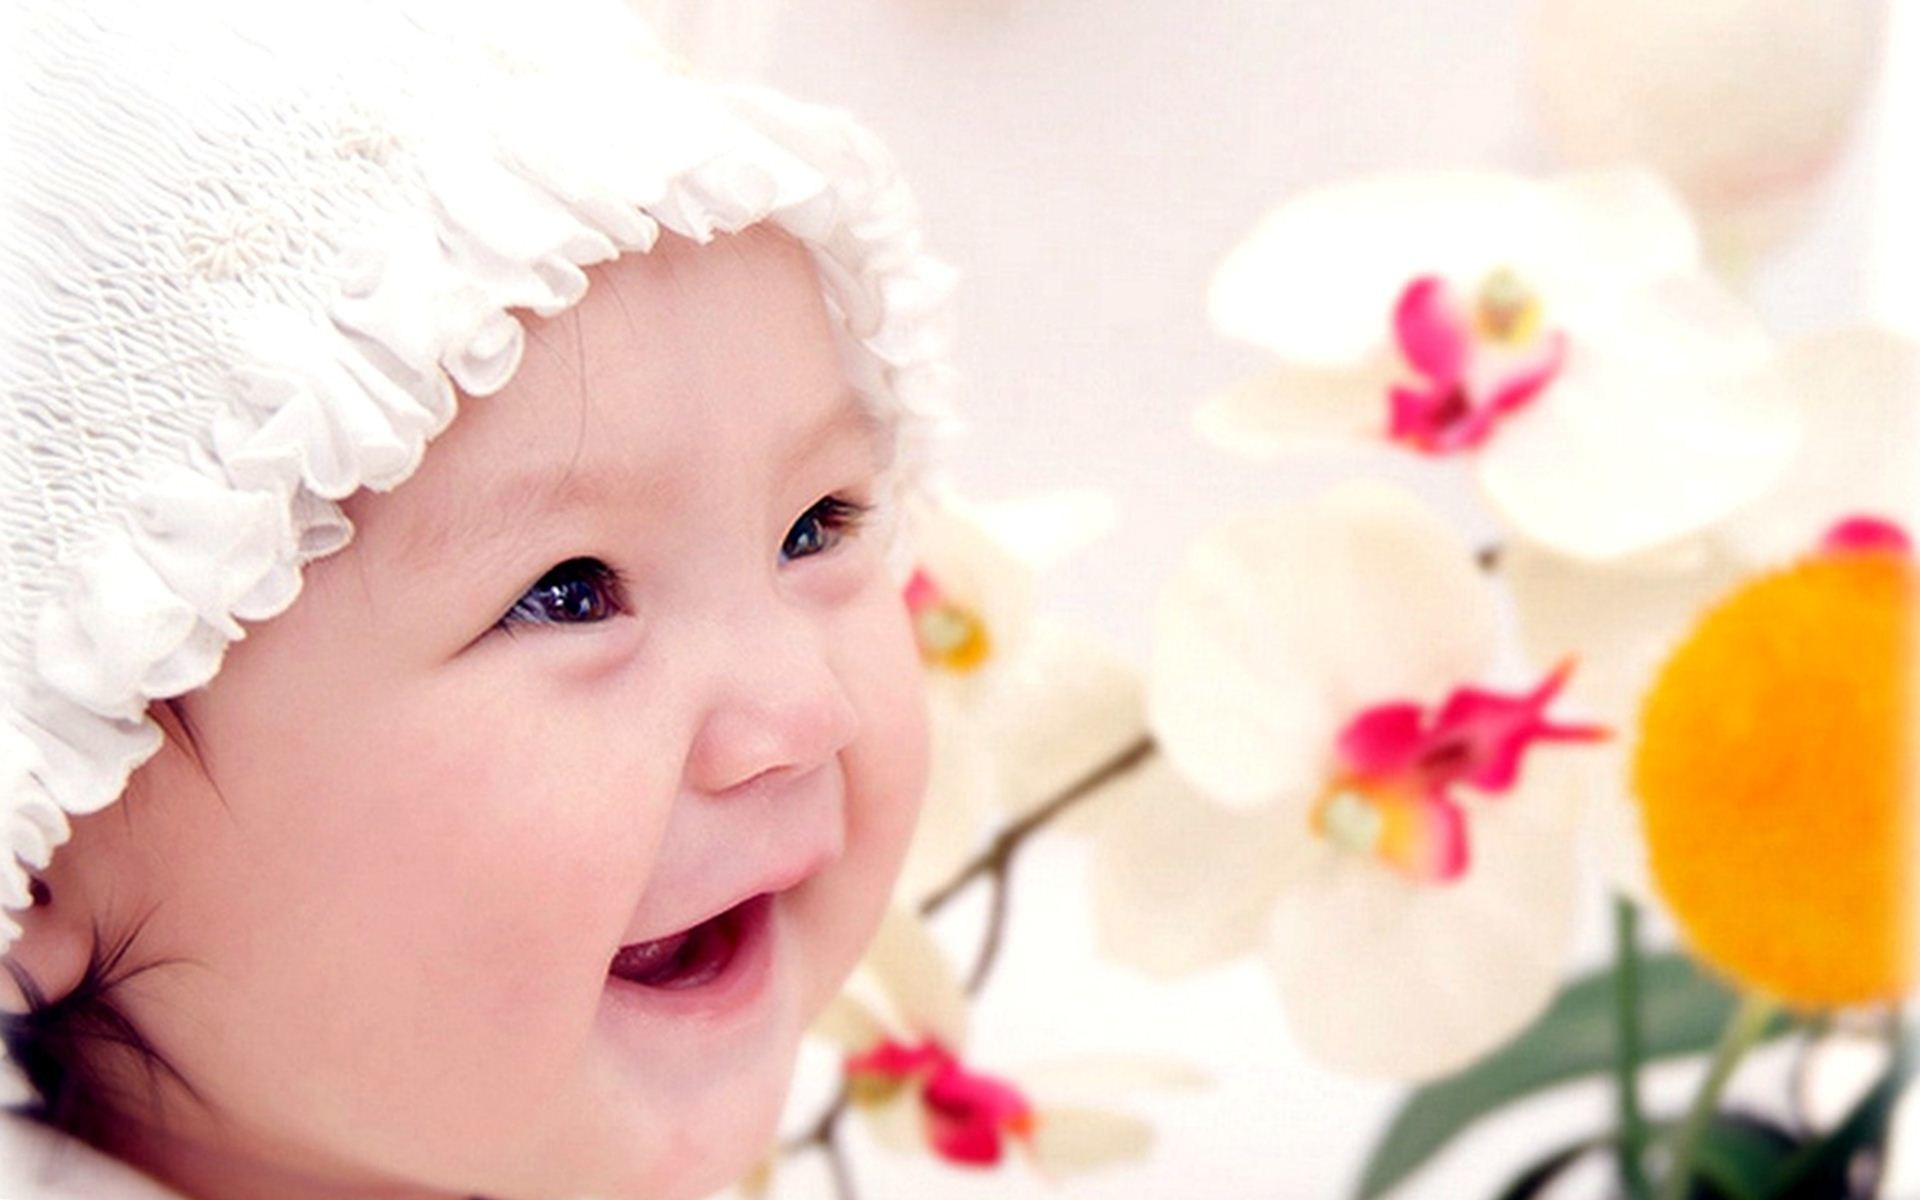 Wallpapers Collection «Cute Baby Wallpapers»